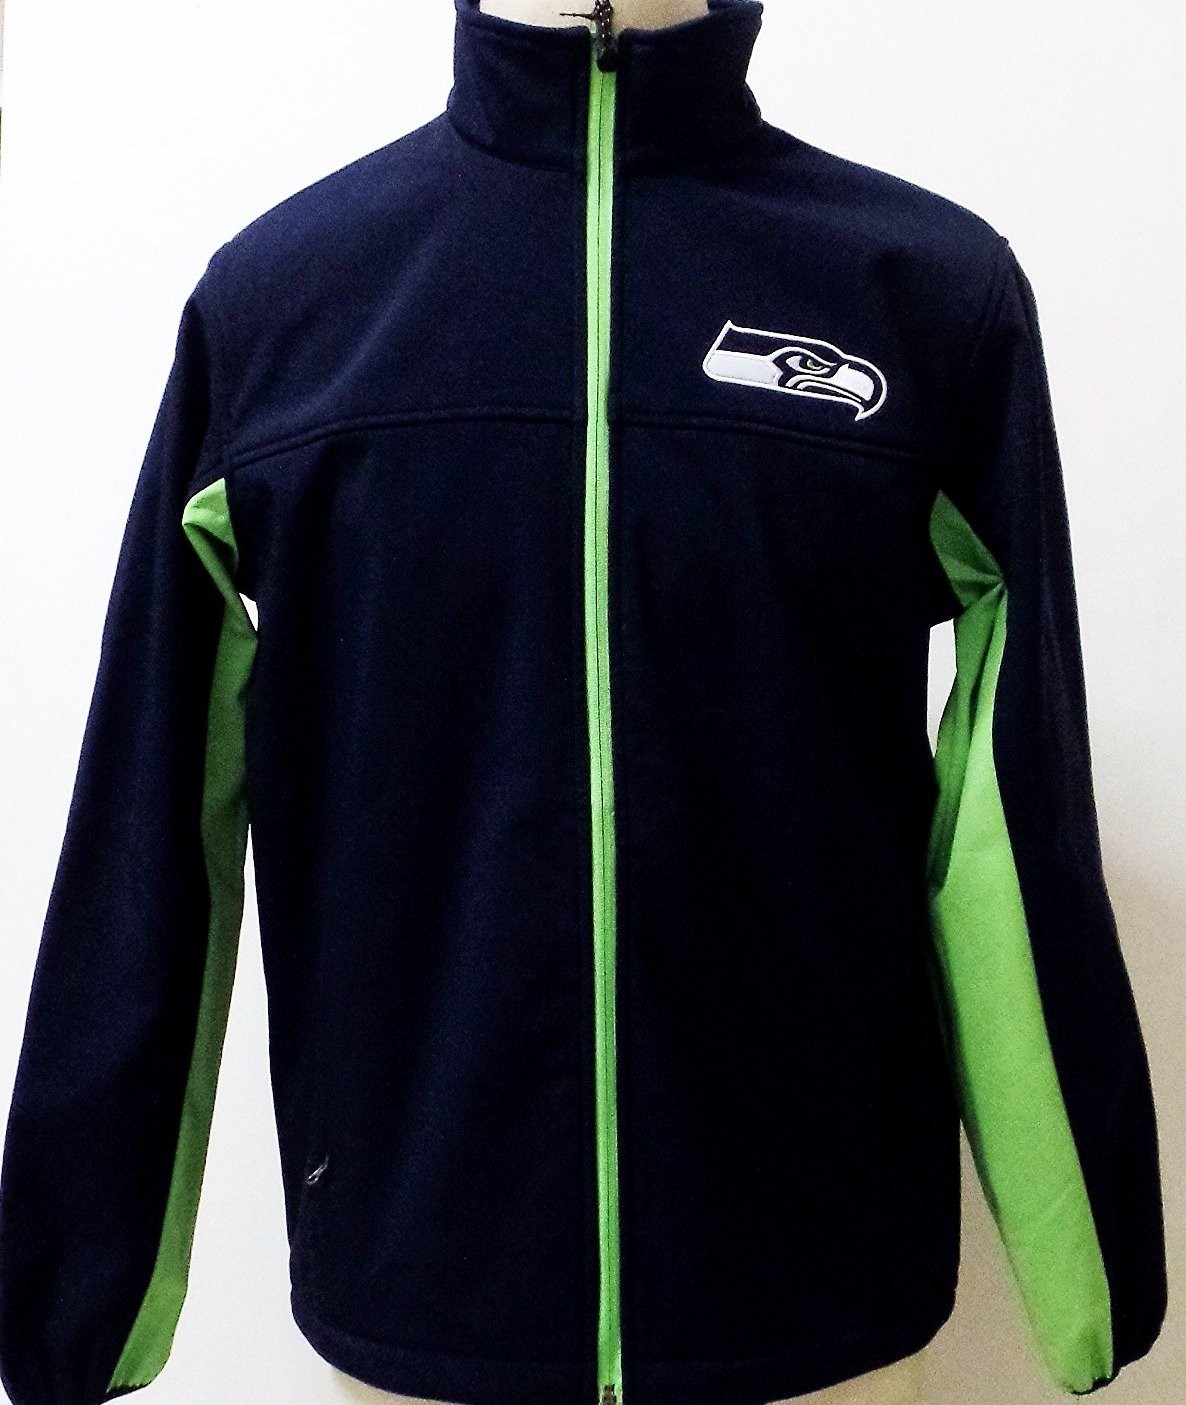 Seattle Seahawks 3 Layer Soft Shell Bonded Hands High Jacket by G-III Sports